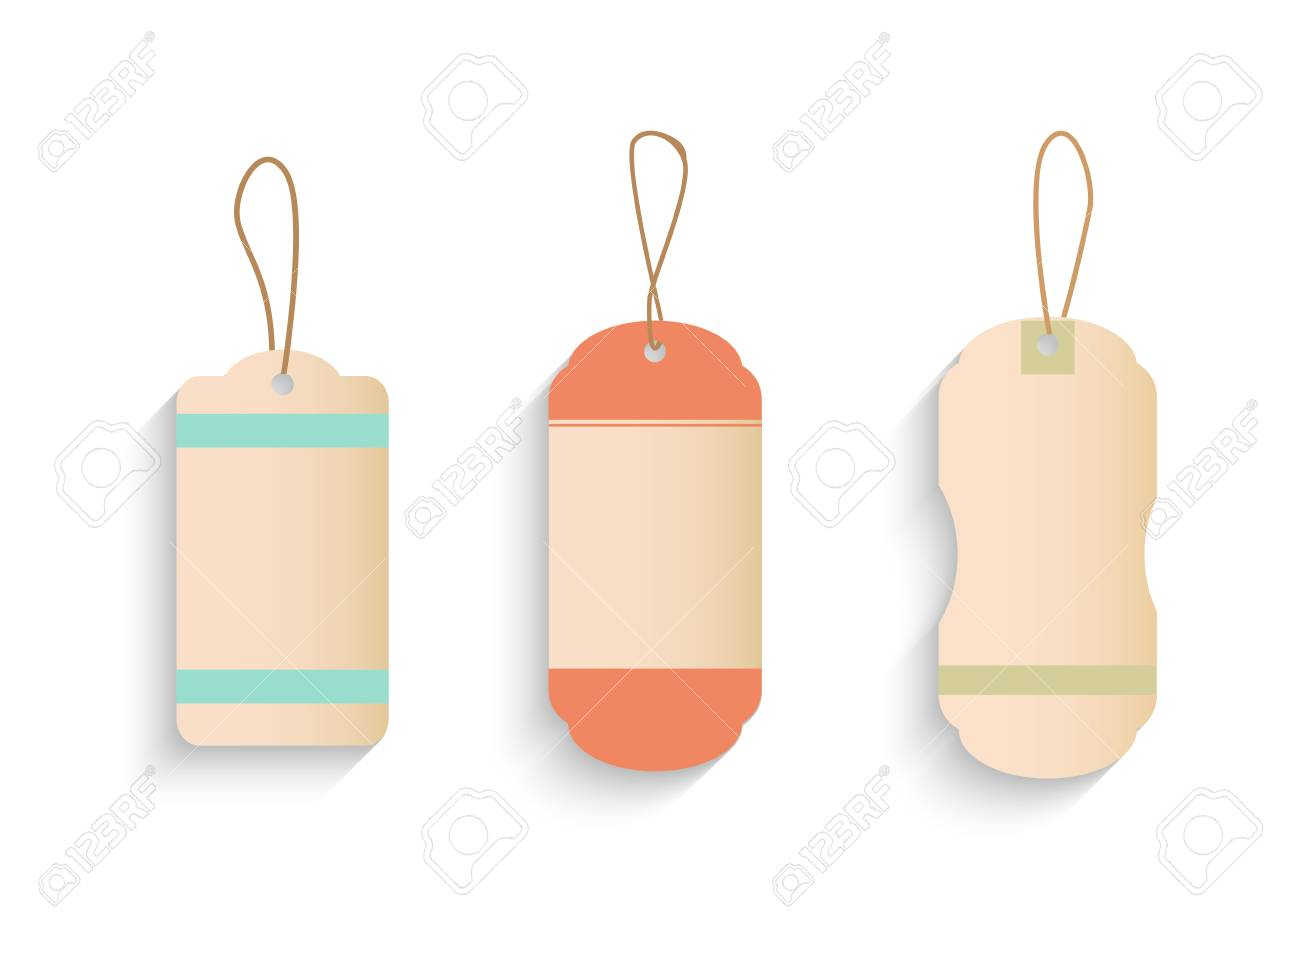 Illustration of various vintage tags isolated on a white background. - 97016065